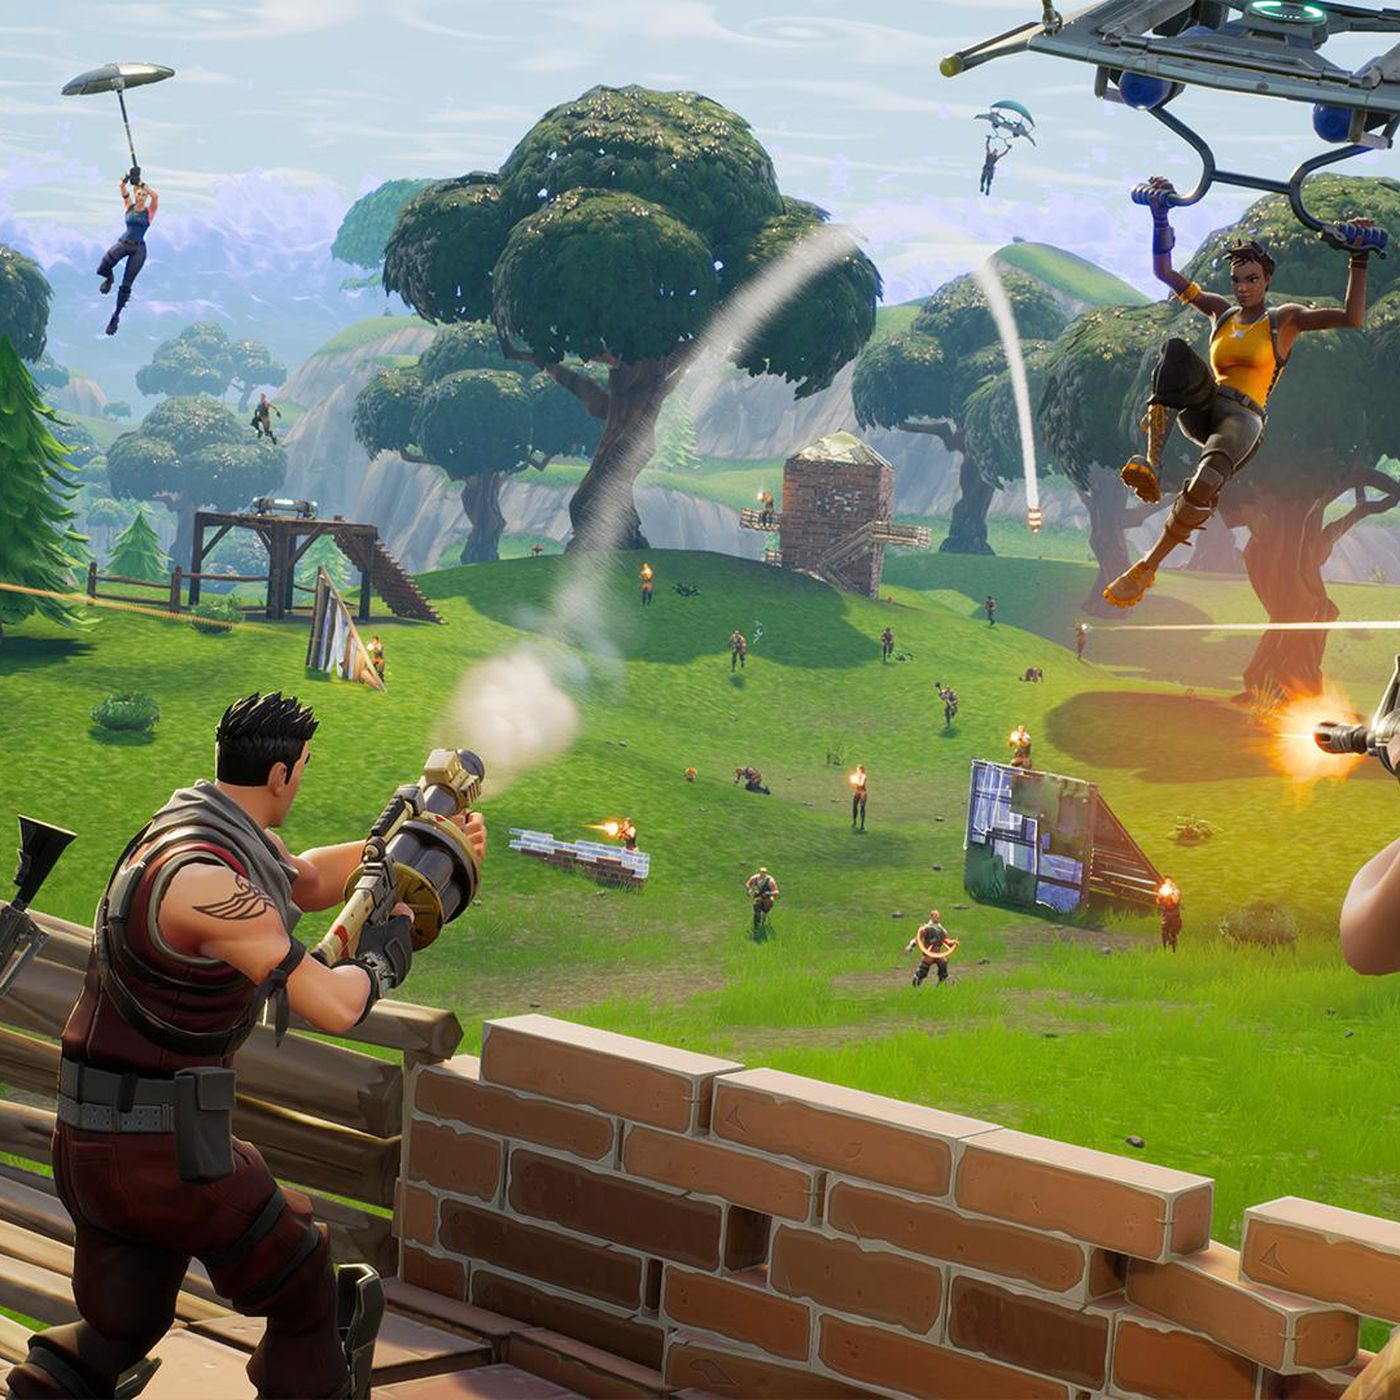 Fortnite's 50 v 50 mode is teaching players how to be less selfish